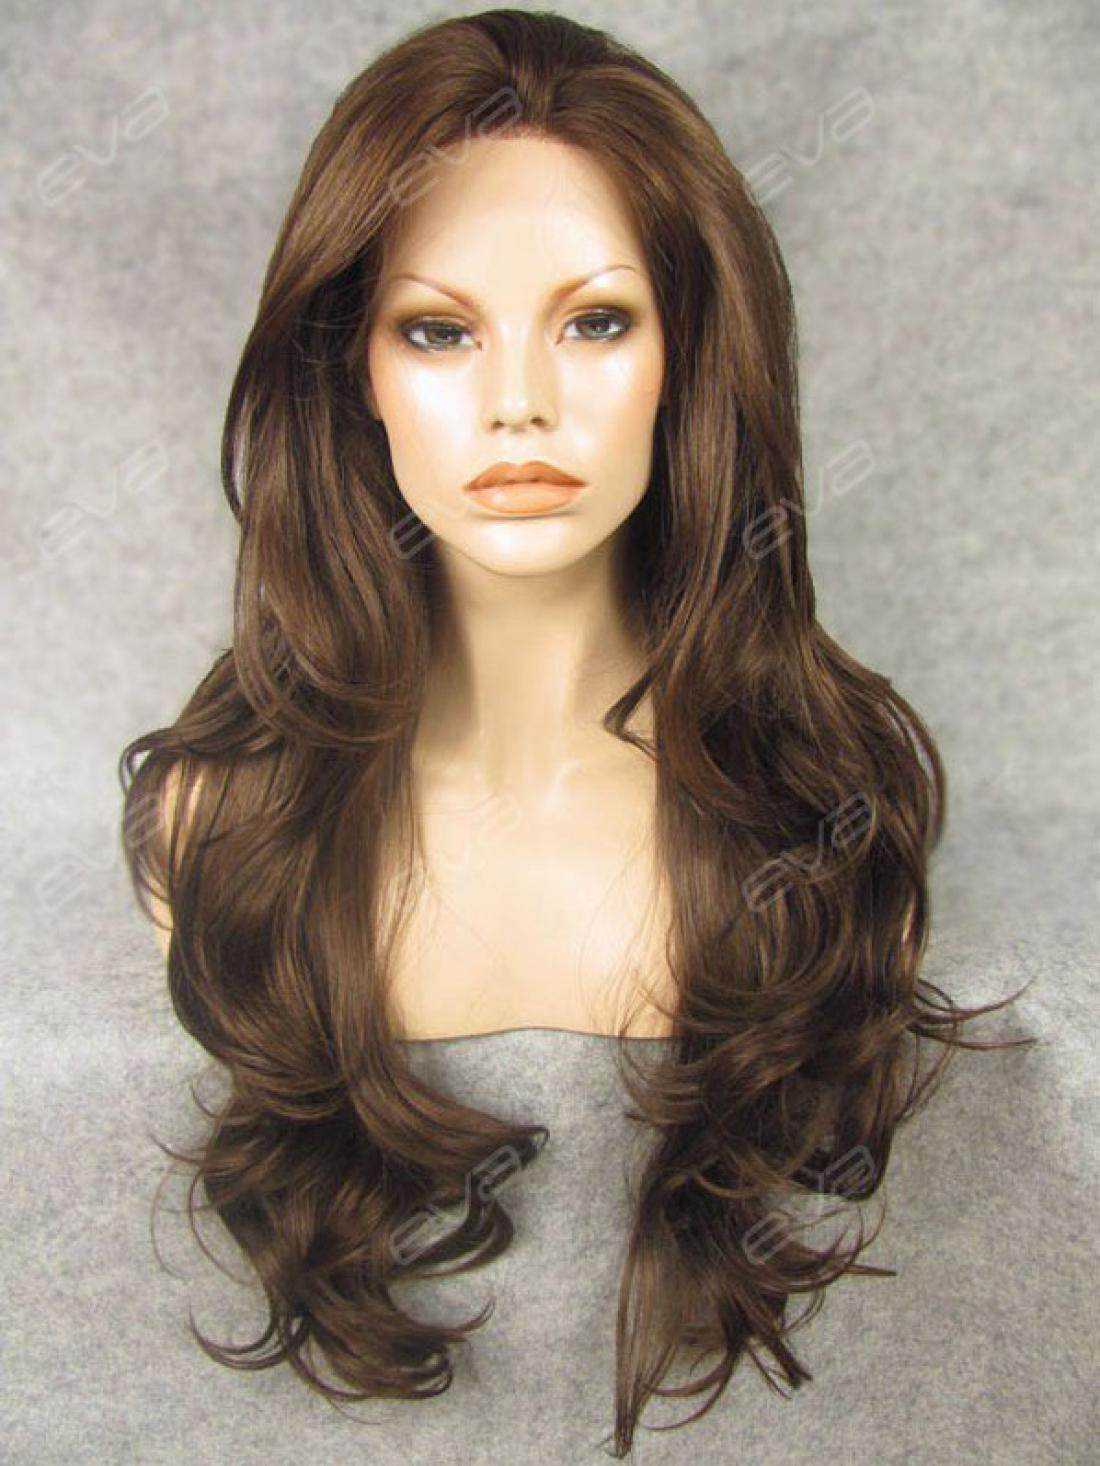 Latest Design Trends For Girls – The Influence of Brown Wigs